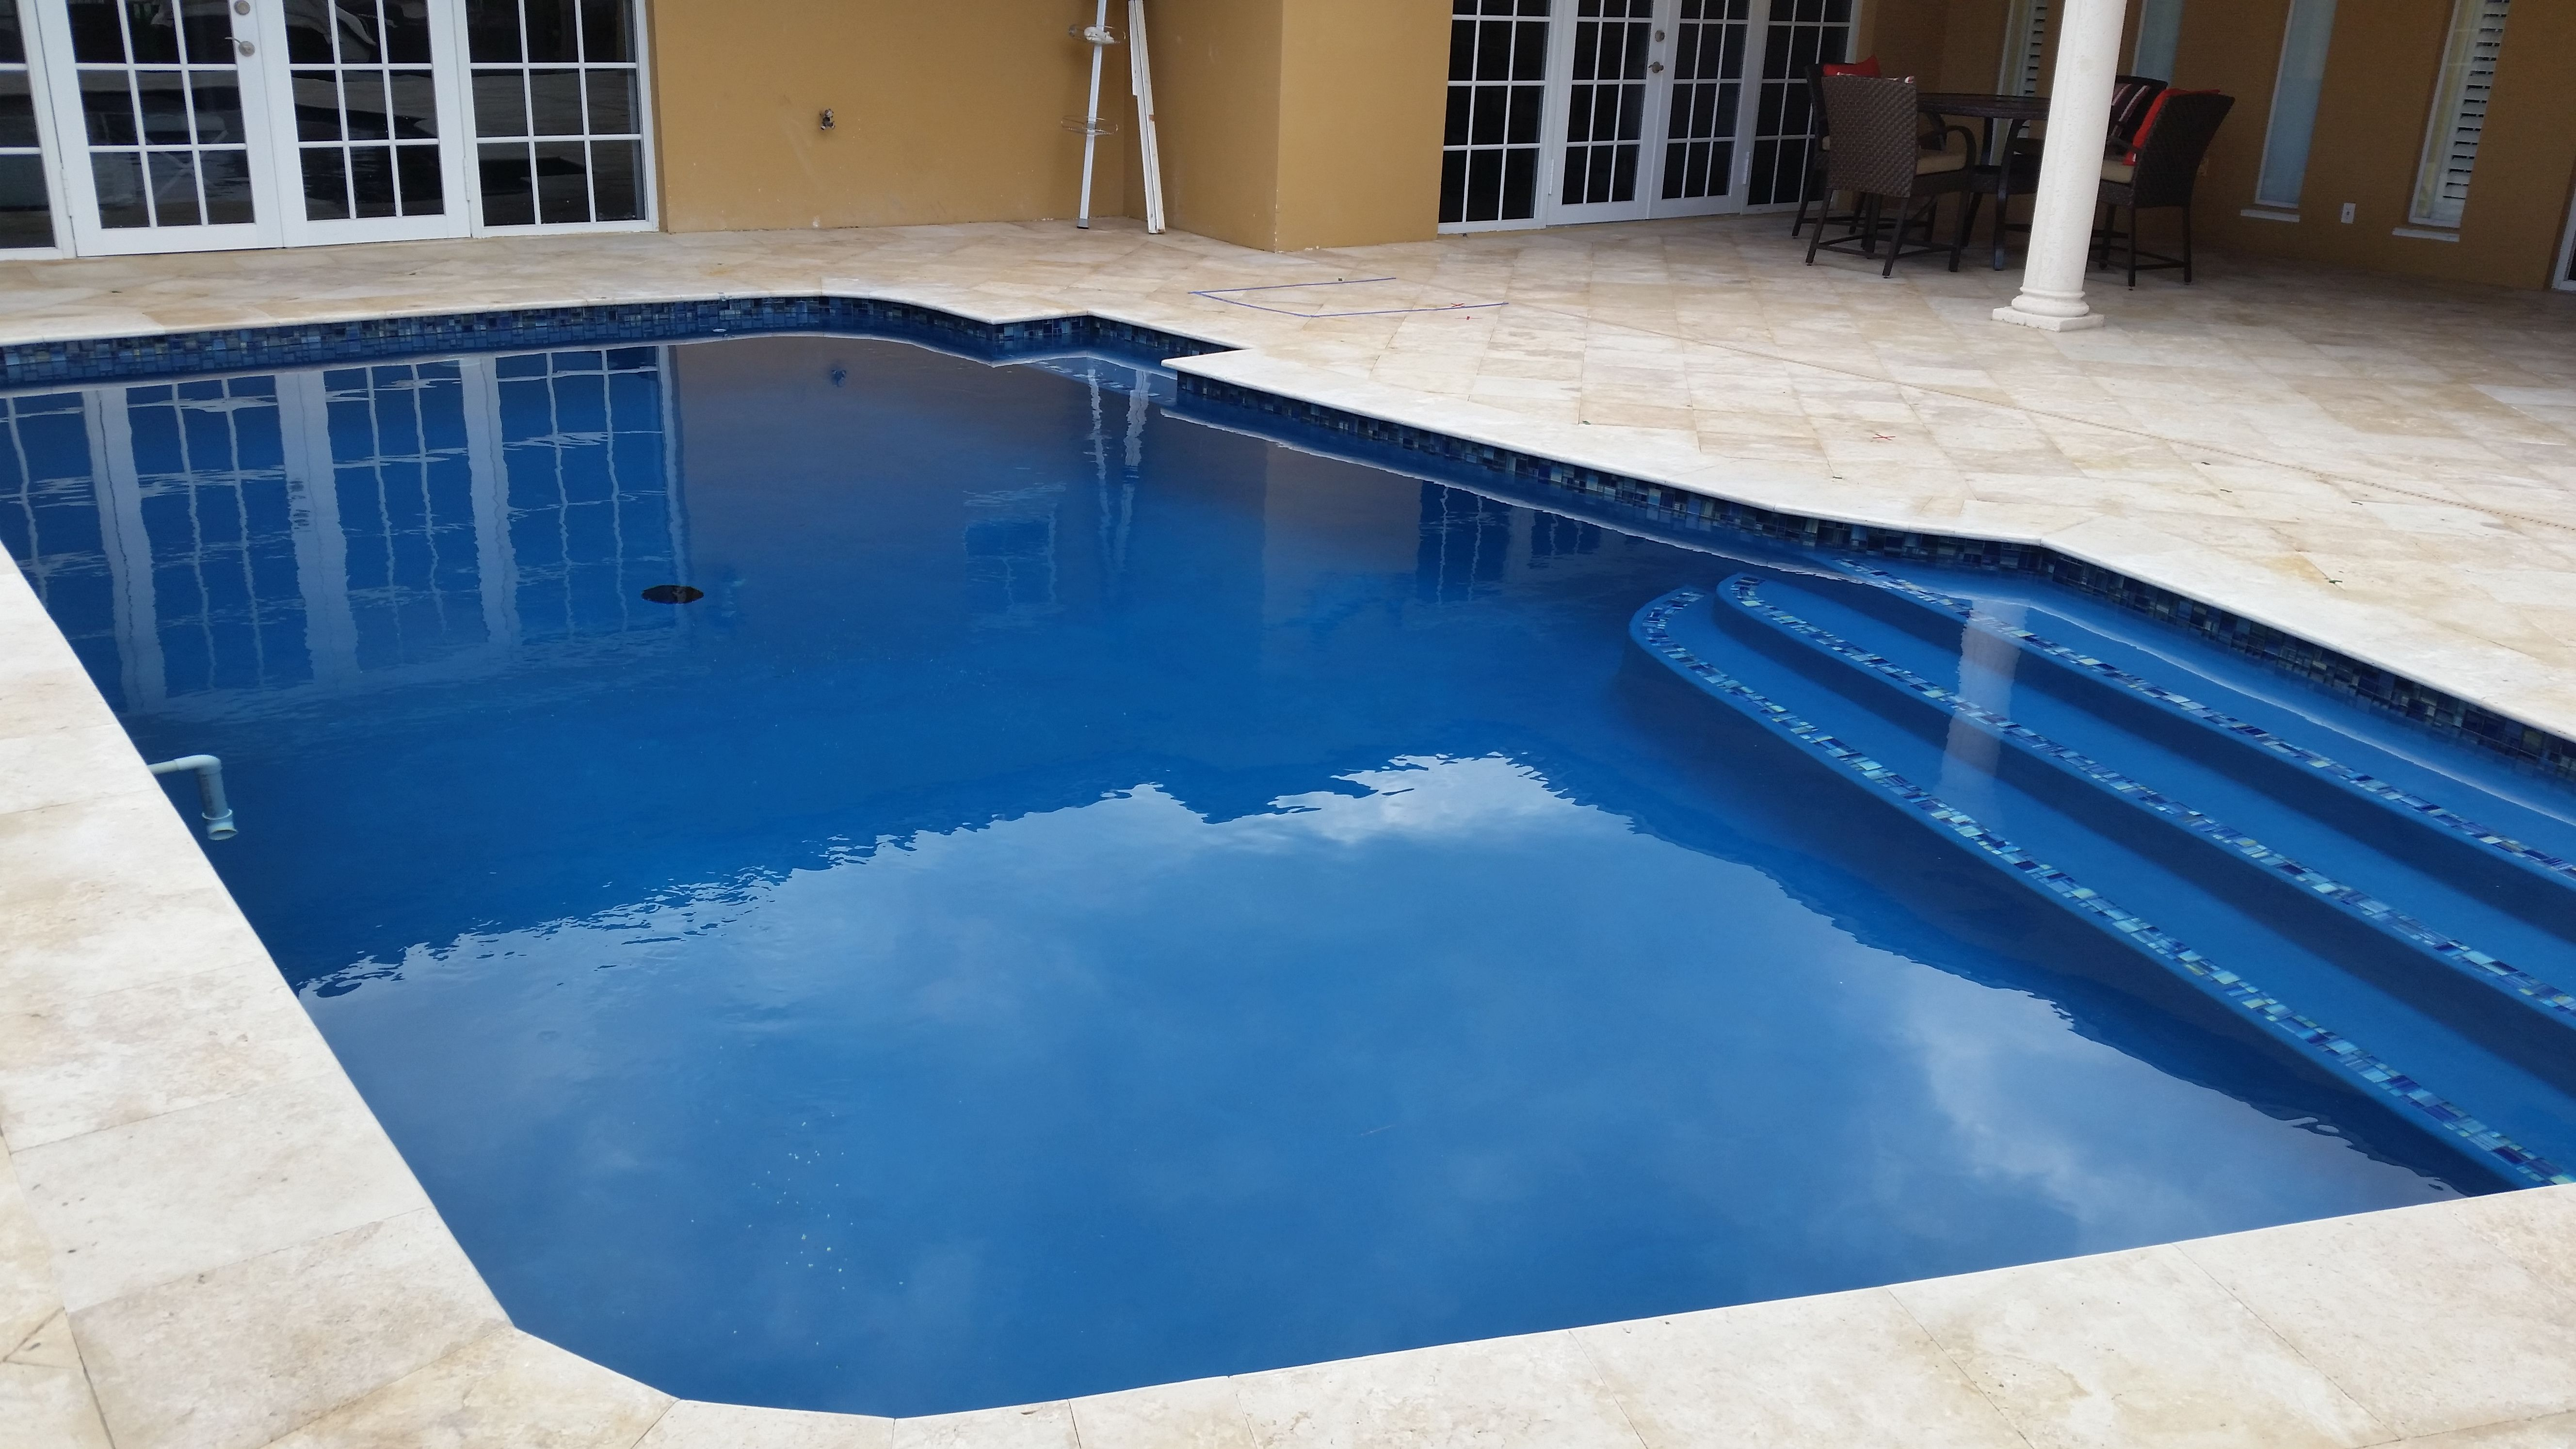 Younique pool renovations repairs sunrise florida fl for Pool renovations